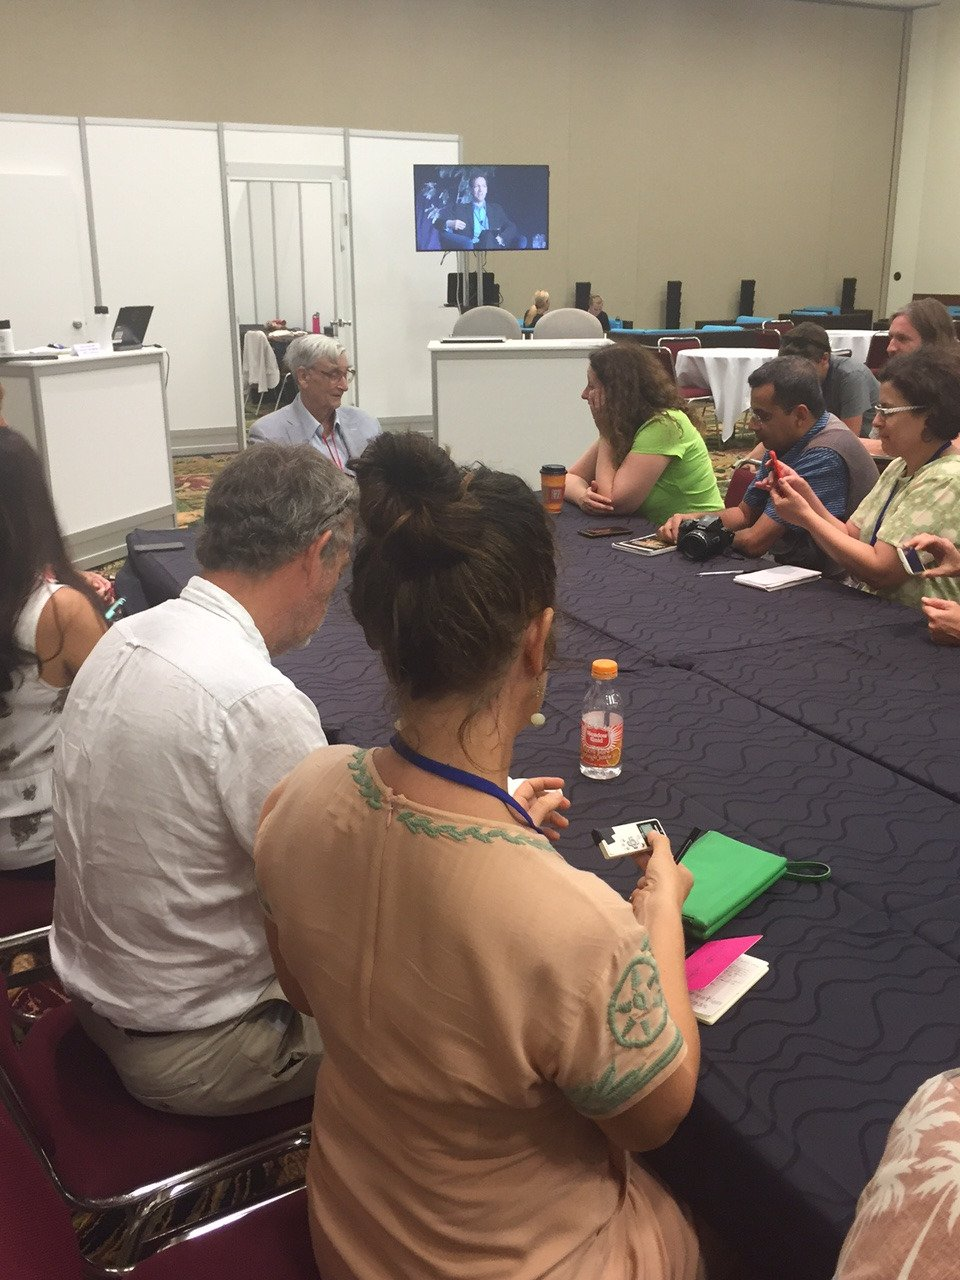 E.O.Wilson says it all comes down to habitat conservation: Half-Earth. Meets with media at #IUCNCongress. https://t.co/utoIGarrac